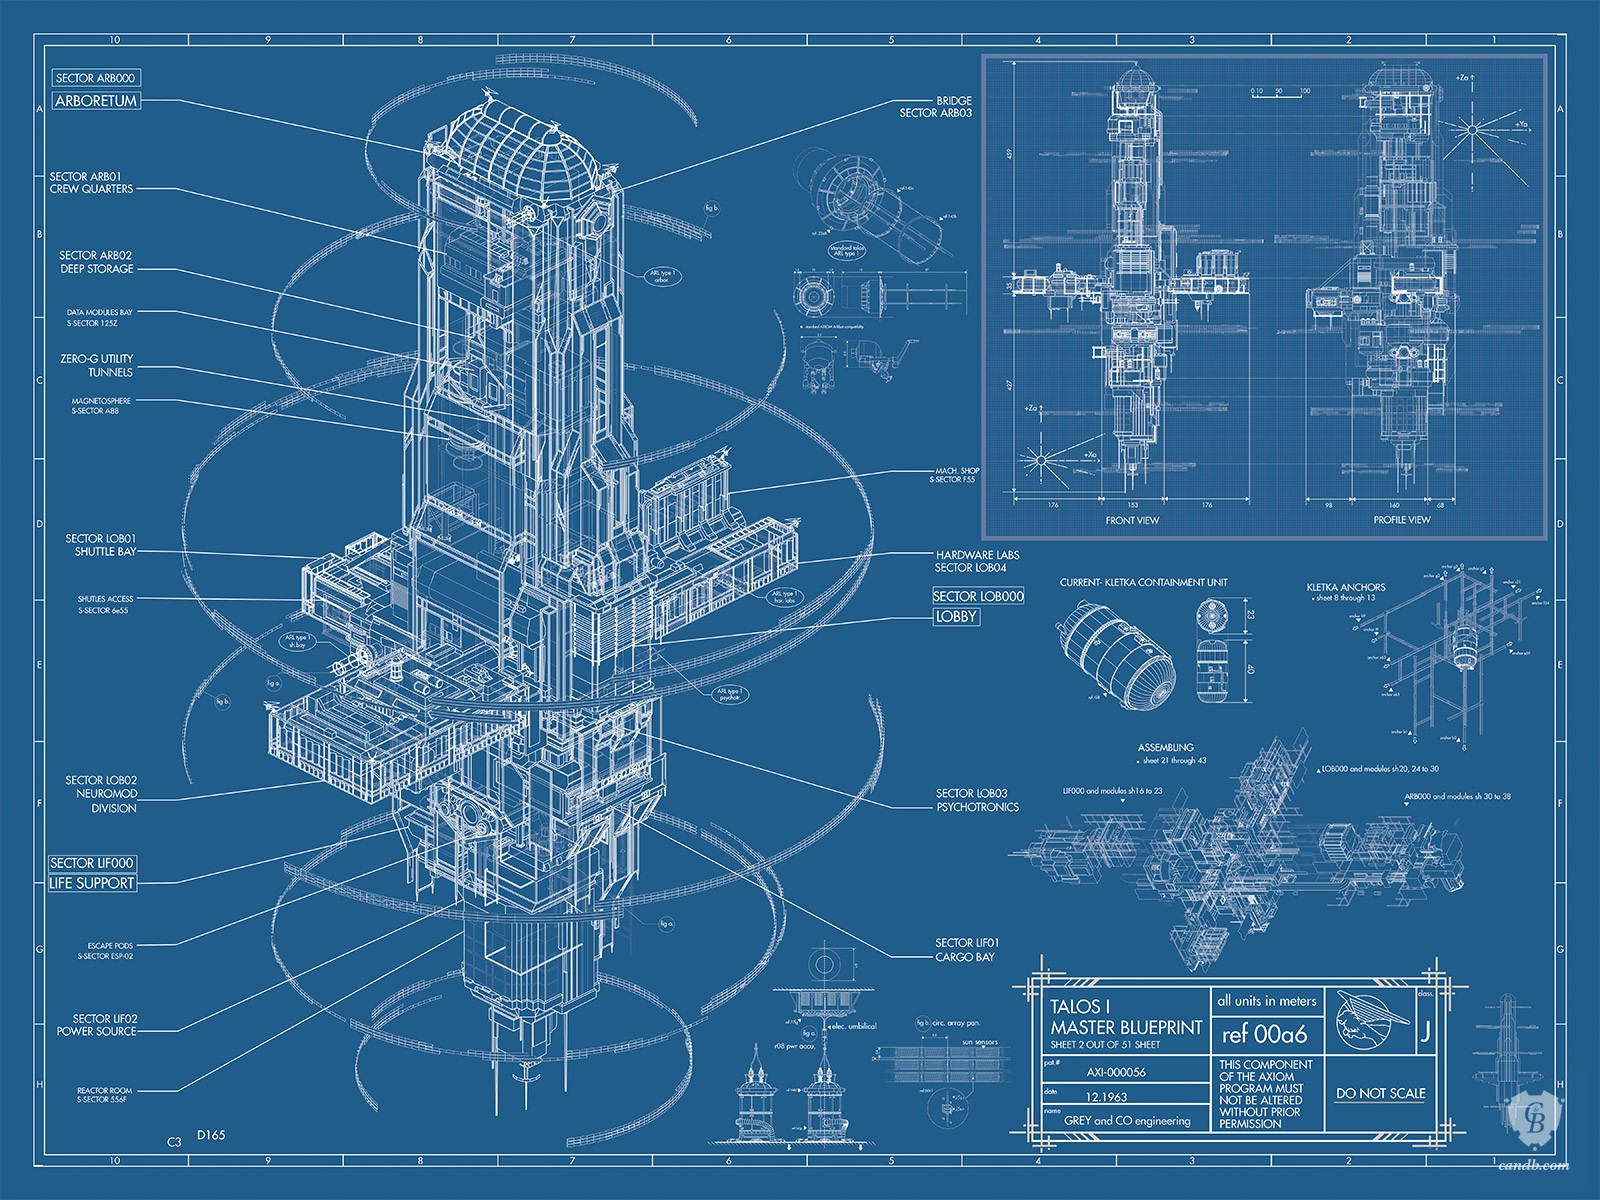 House Plans With Photos Artwork Talos I Master Blueprint Prey Arkane Studios